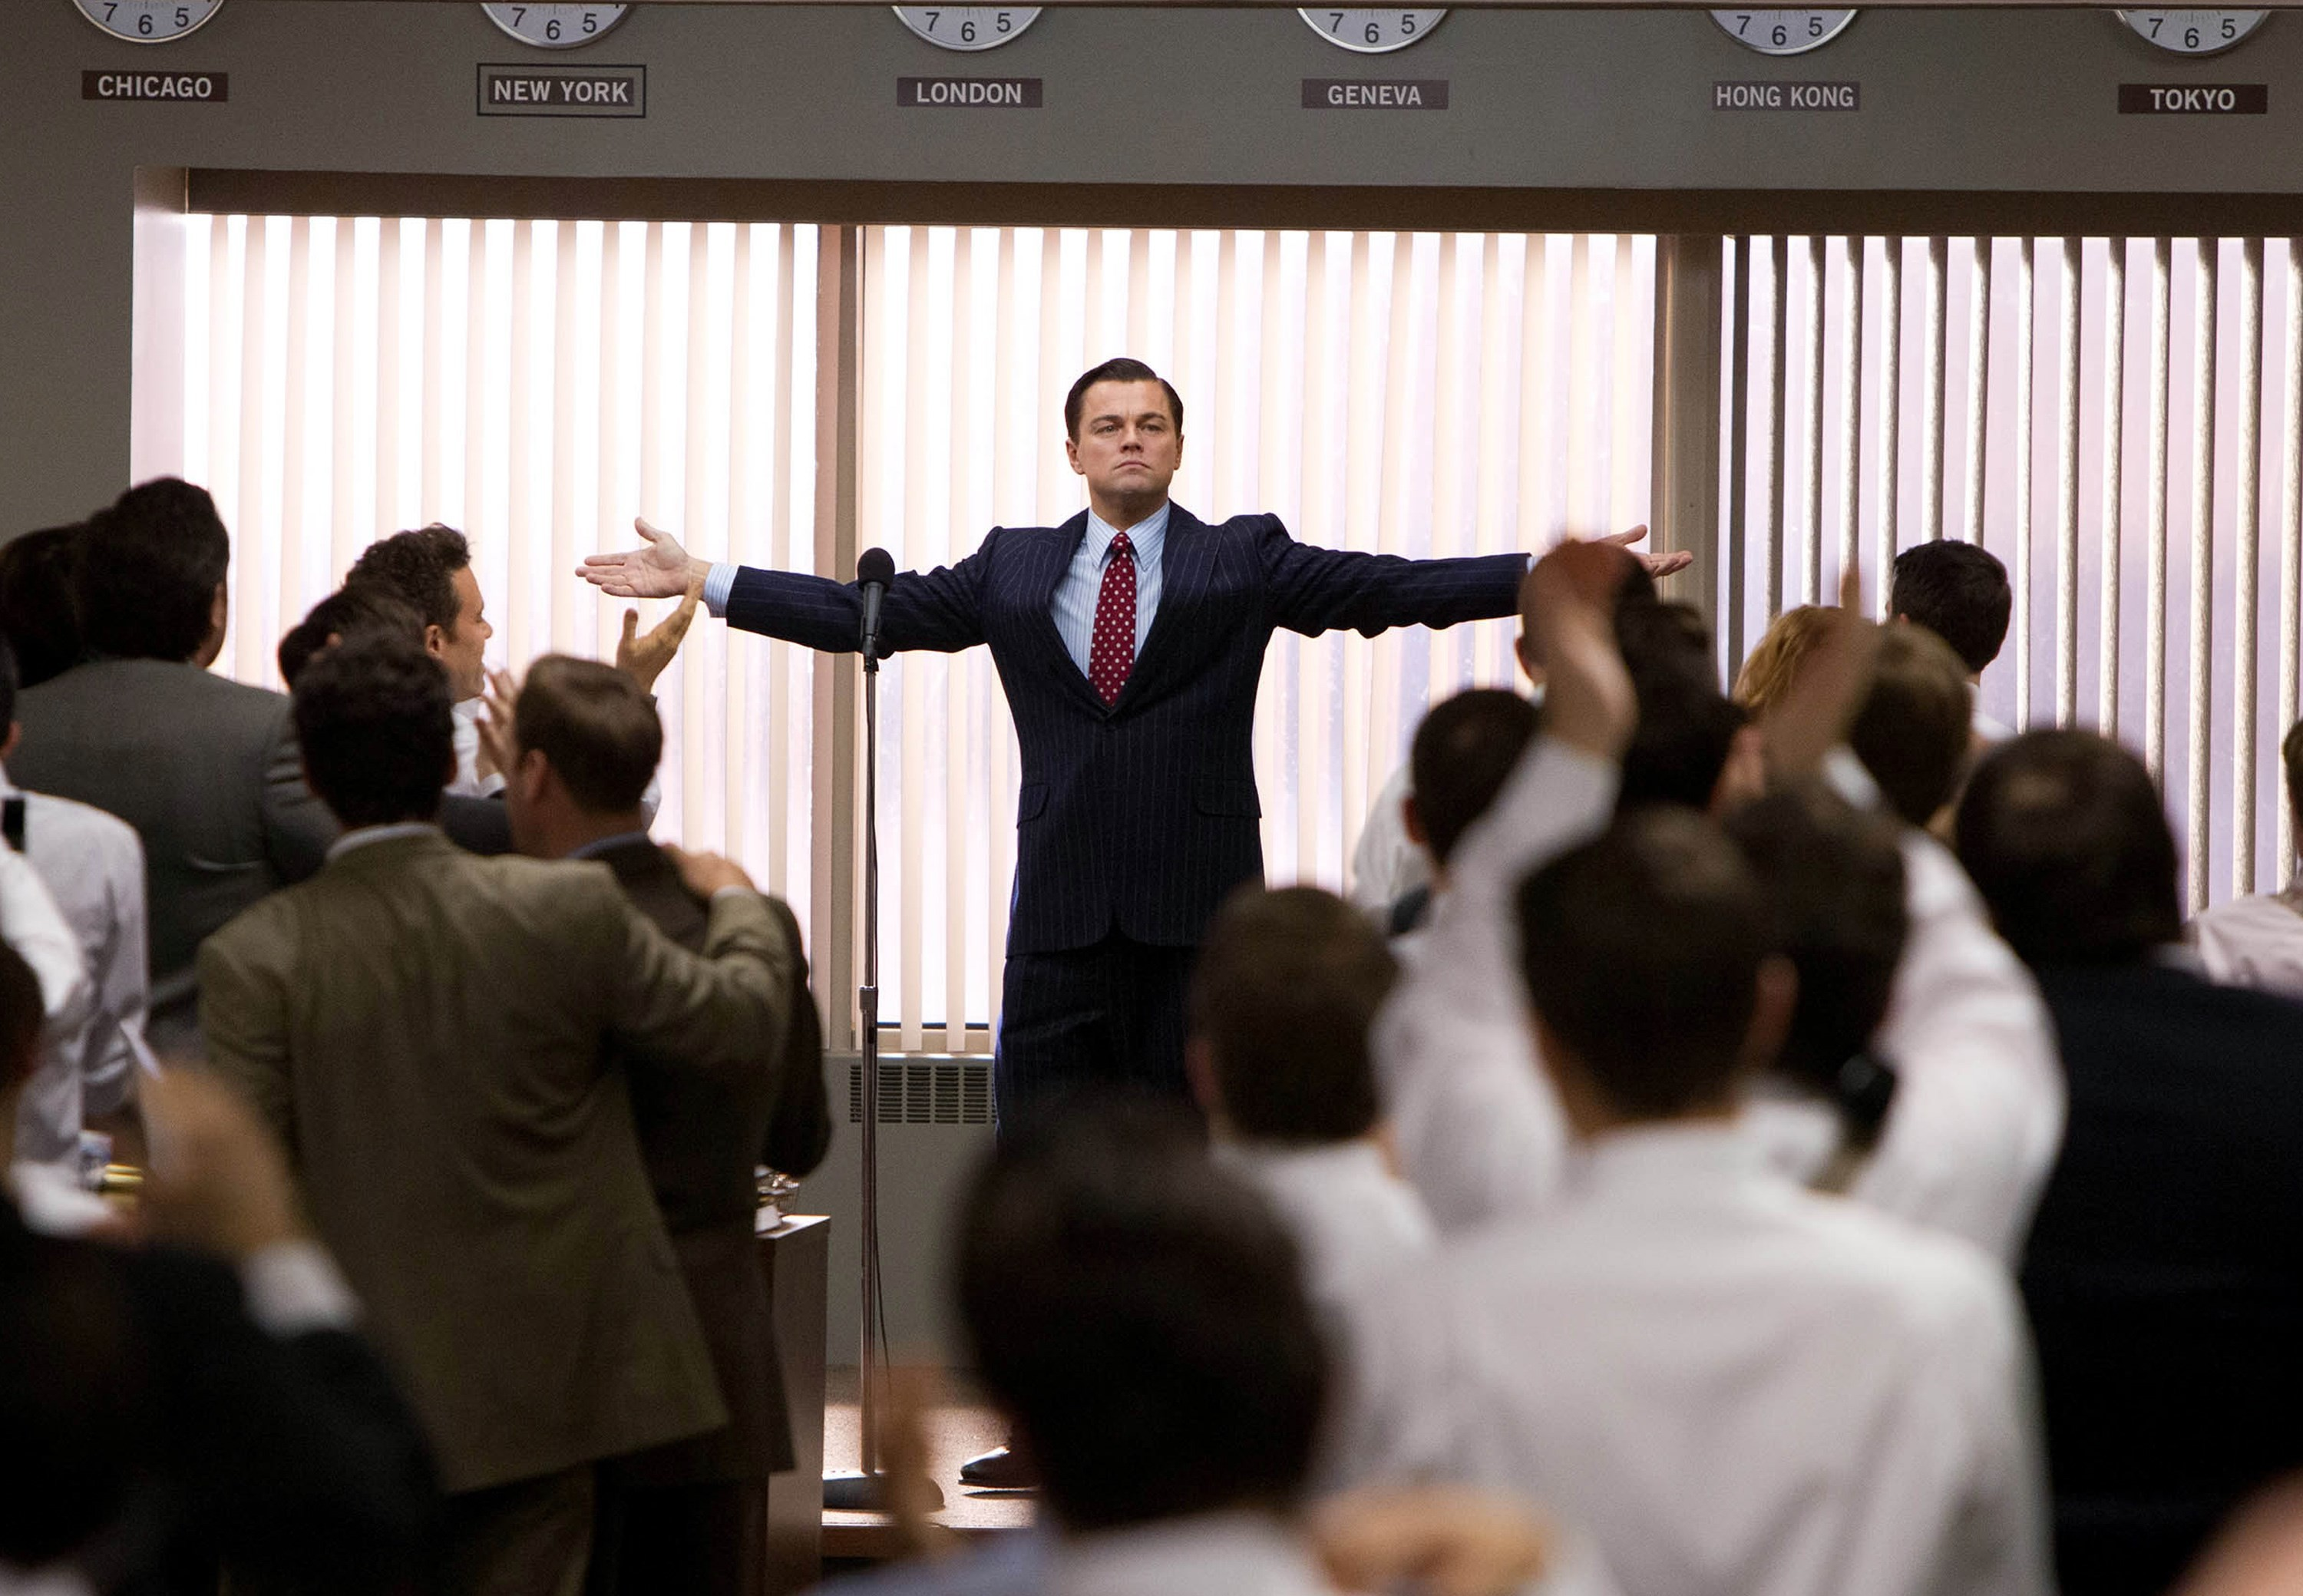 HDQ Images the wolf of wall street wallpaper – the wolf of wall street  category